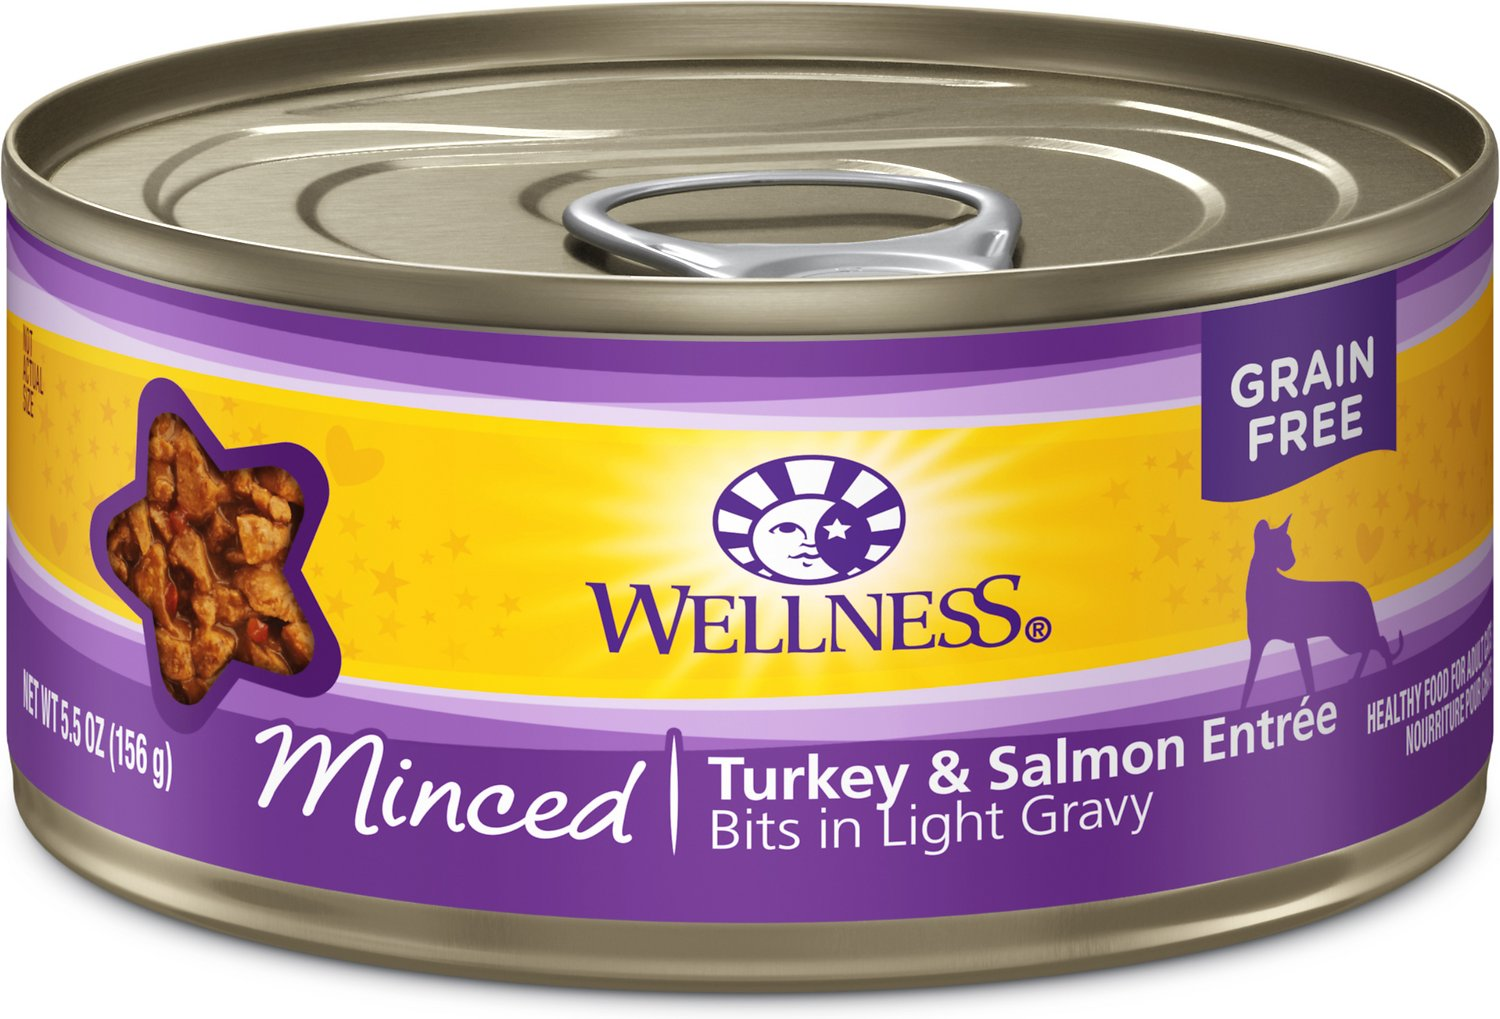 Wellness Complete Health Minced Turkey & Salmon Entree Canned Cat Food, 5.5-oz, case of 24